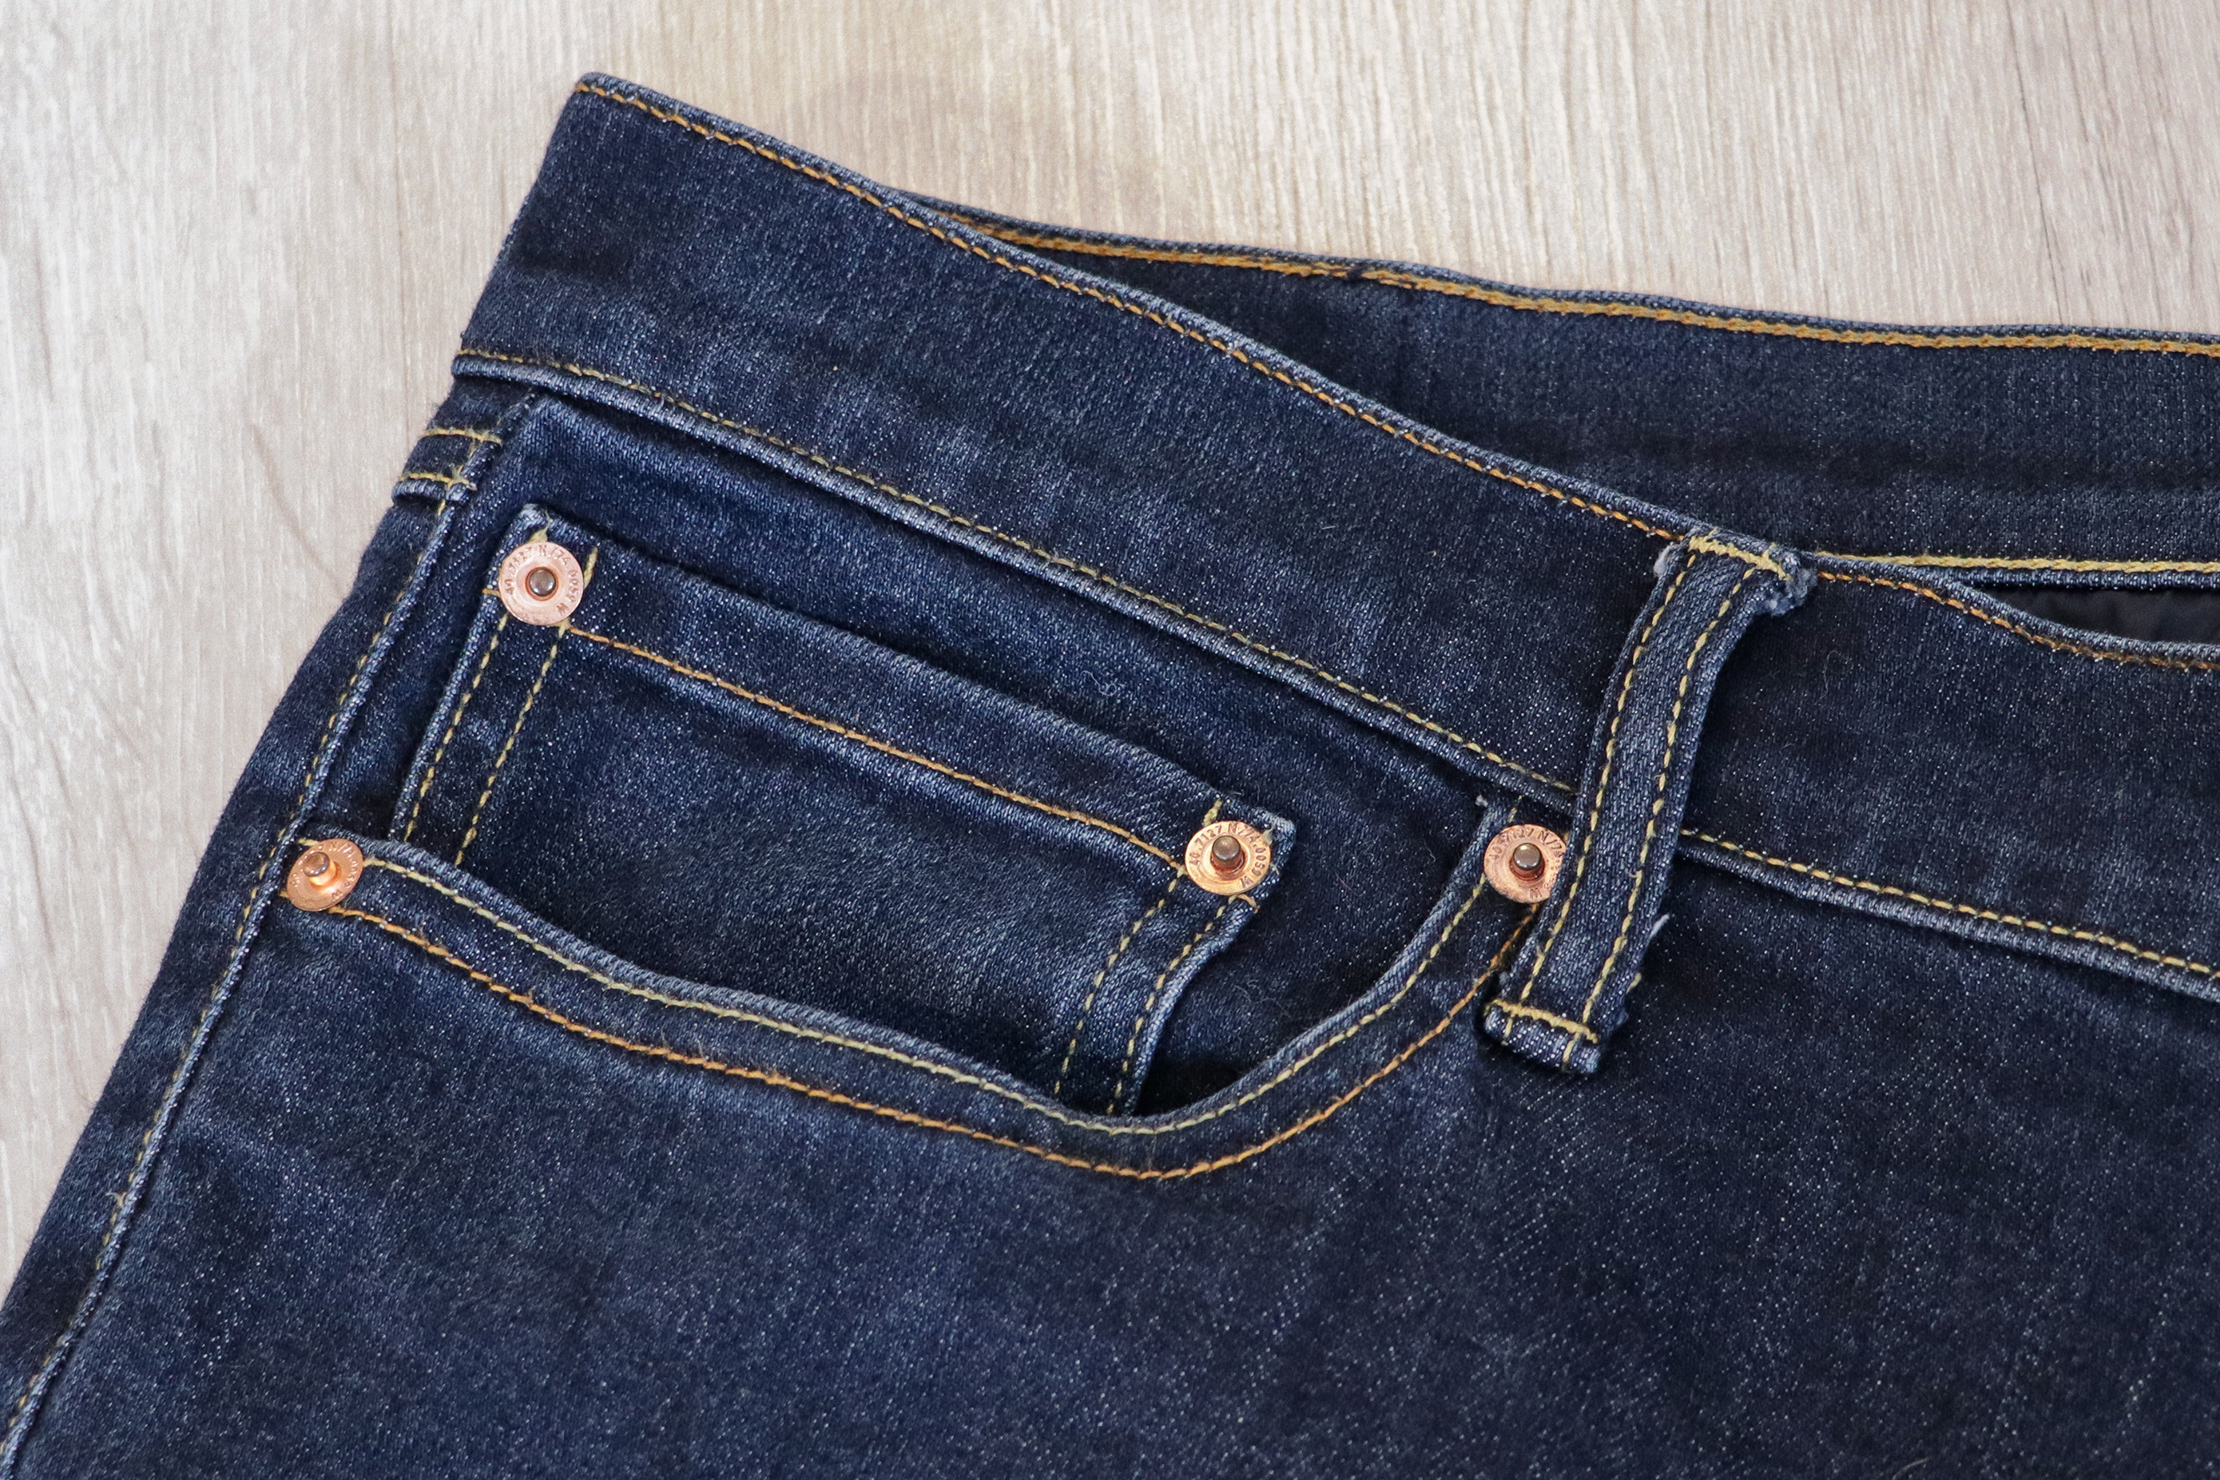 Bluffworks Departure Travel Jeans Stitching